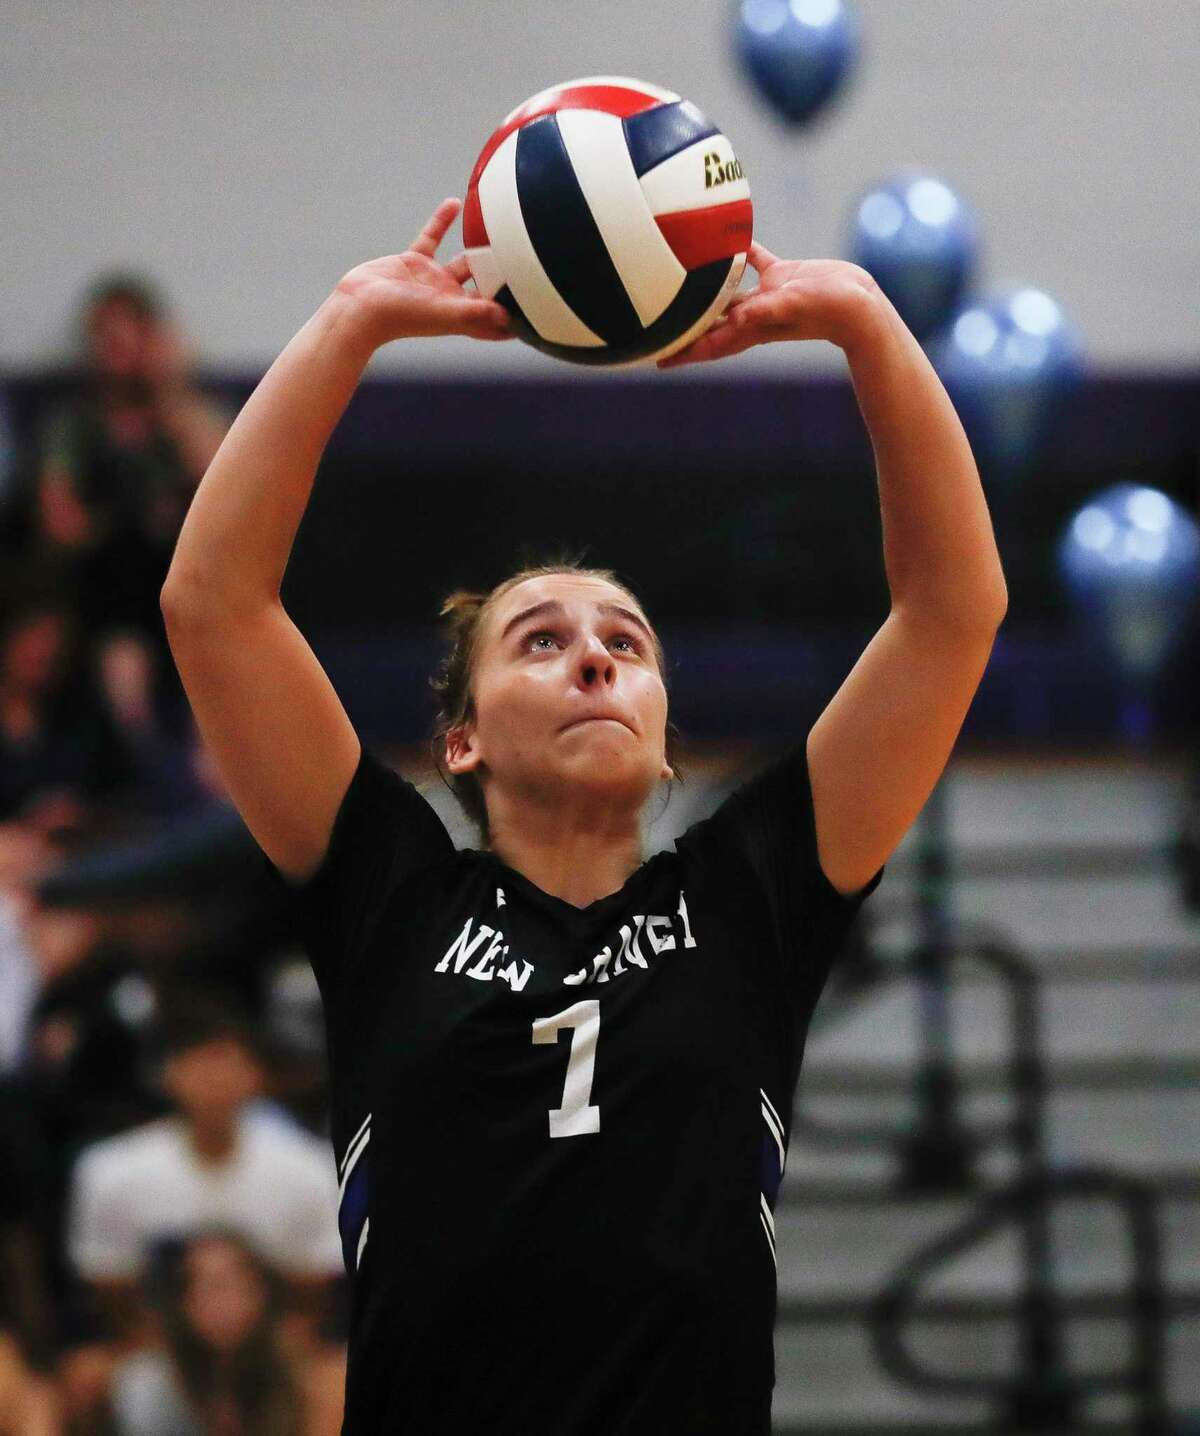 New Caney's Lily Thompson (7) sets the ball during the second set of a high school volleyball match at Willis High School, Tuesday, Sept. 7, 2021, in Willis.